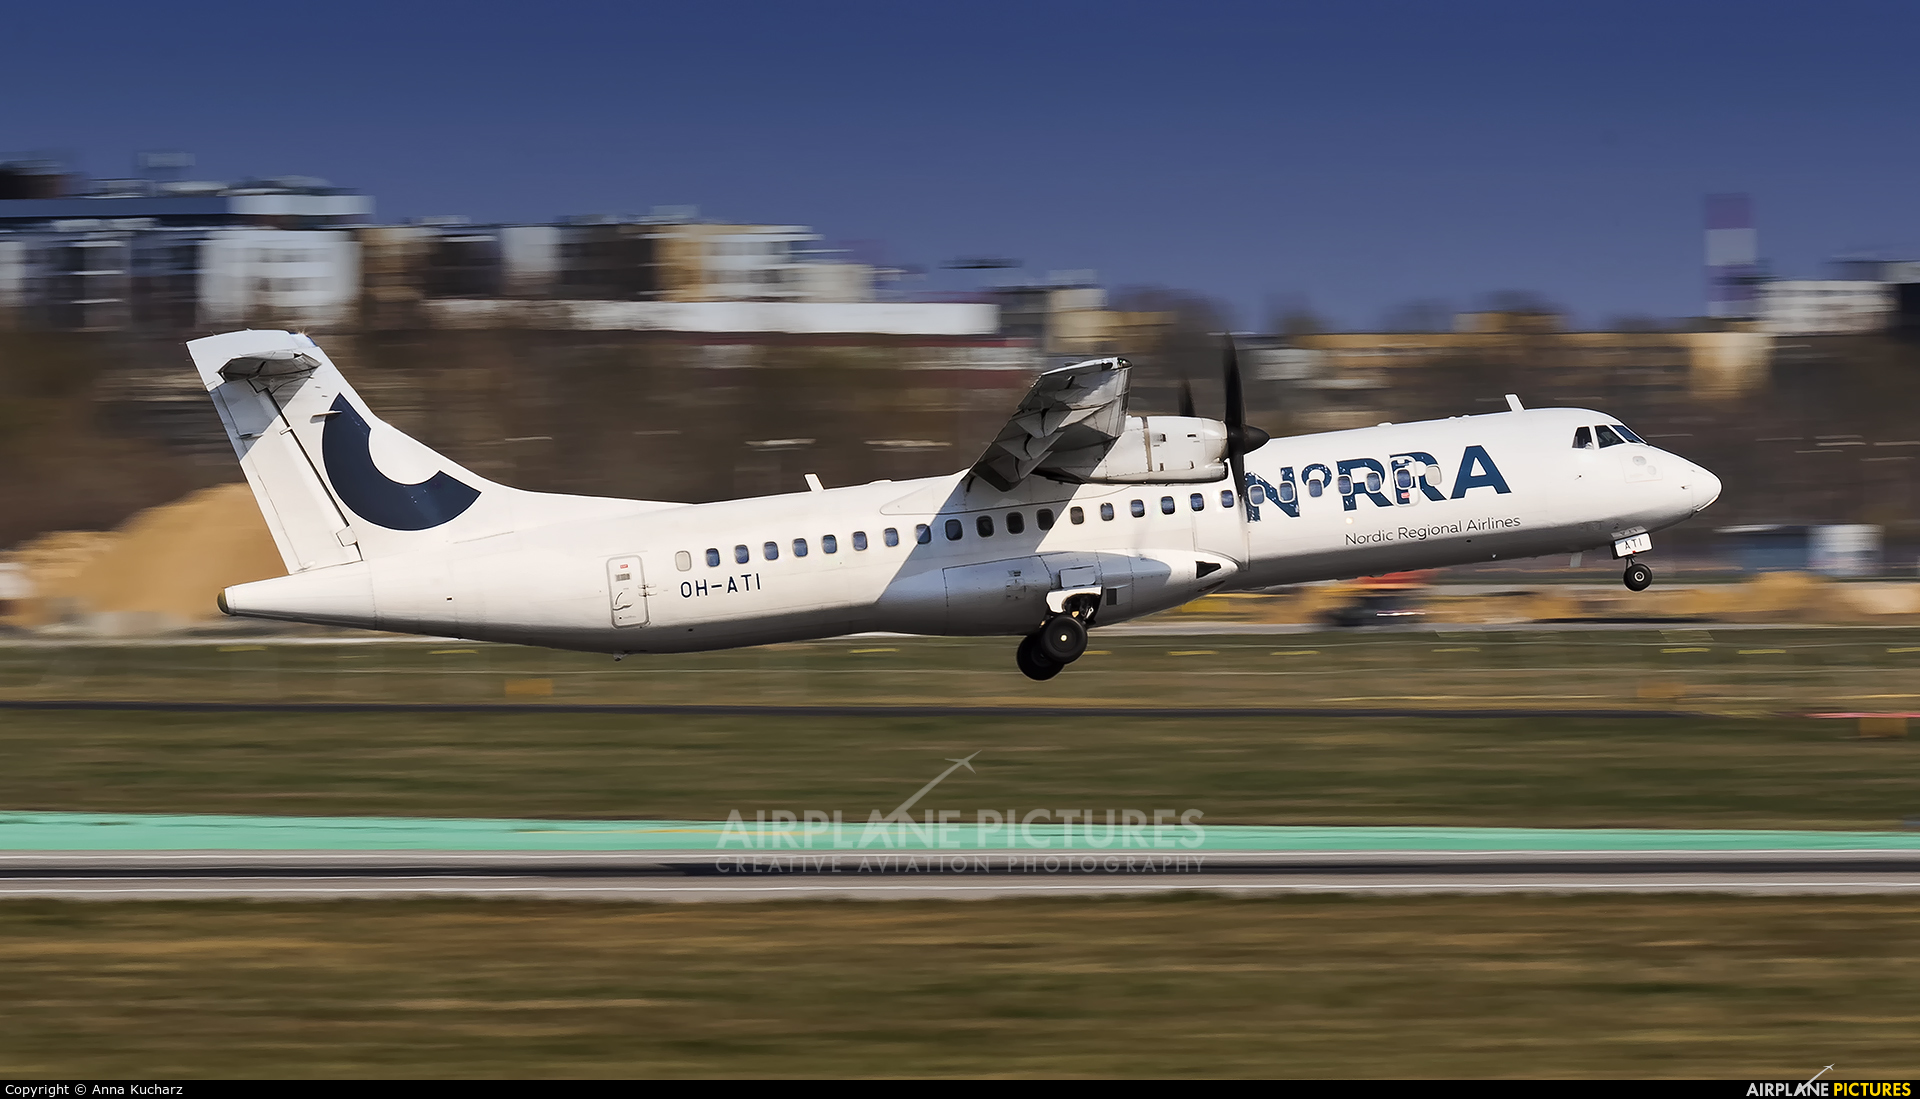 NoRRA - Nordic Regional Airlines OH-ATI aircraft at Warsaw - Frederic Chopin